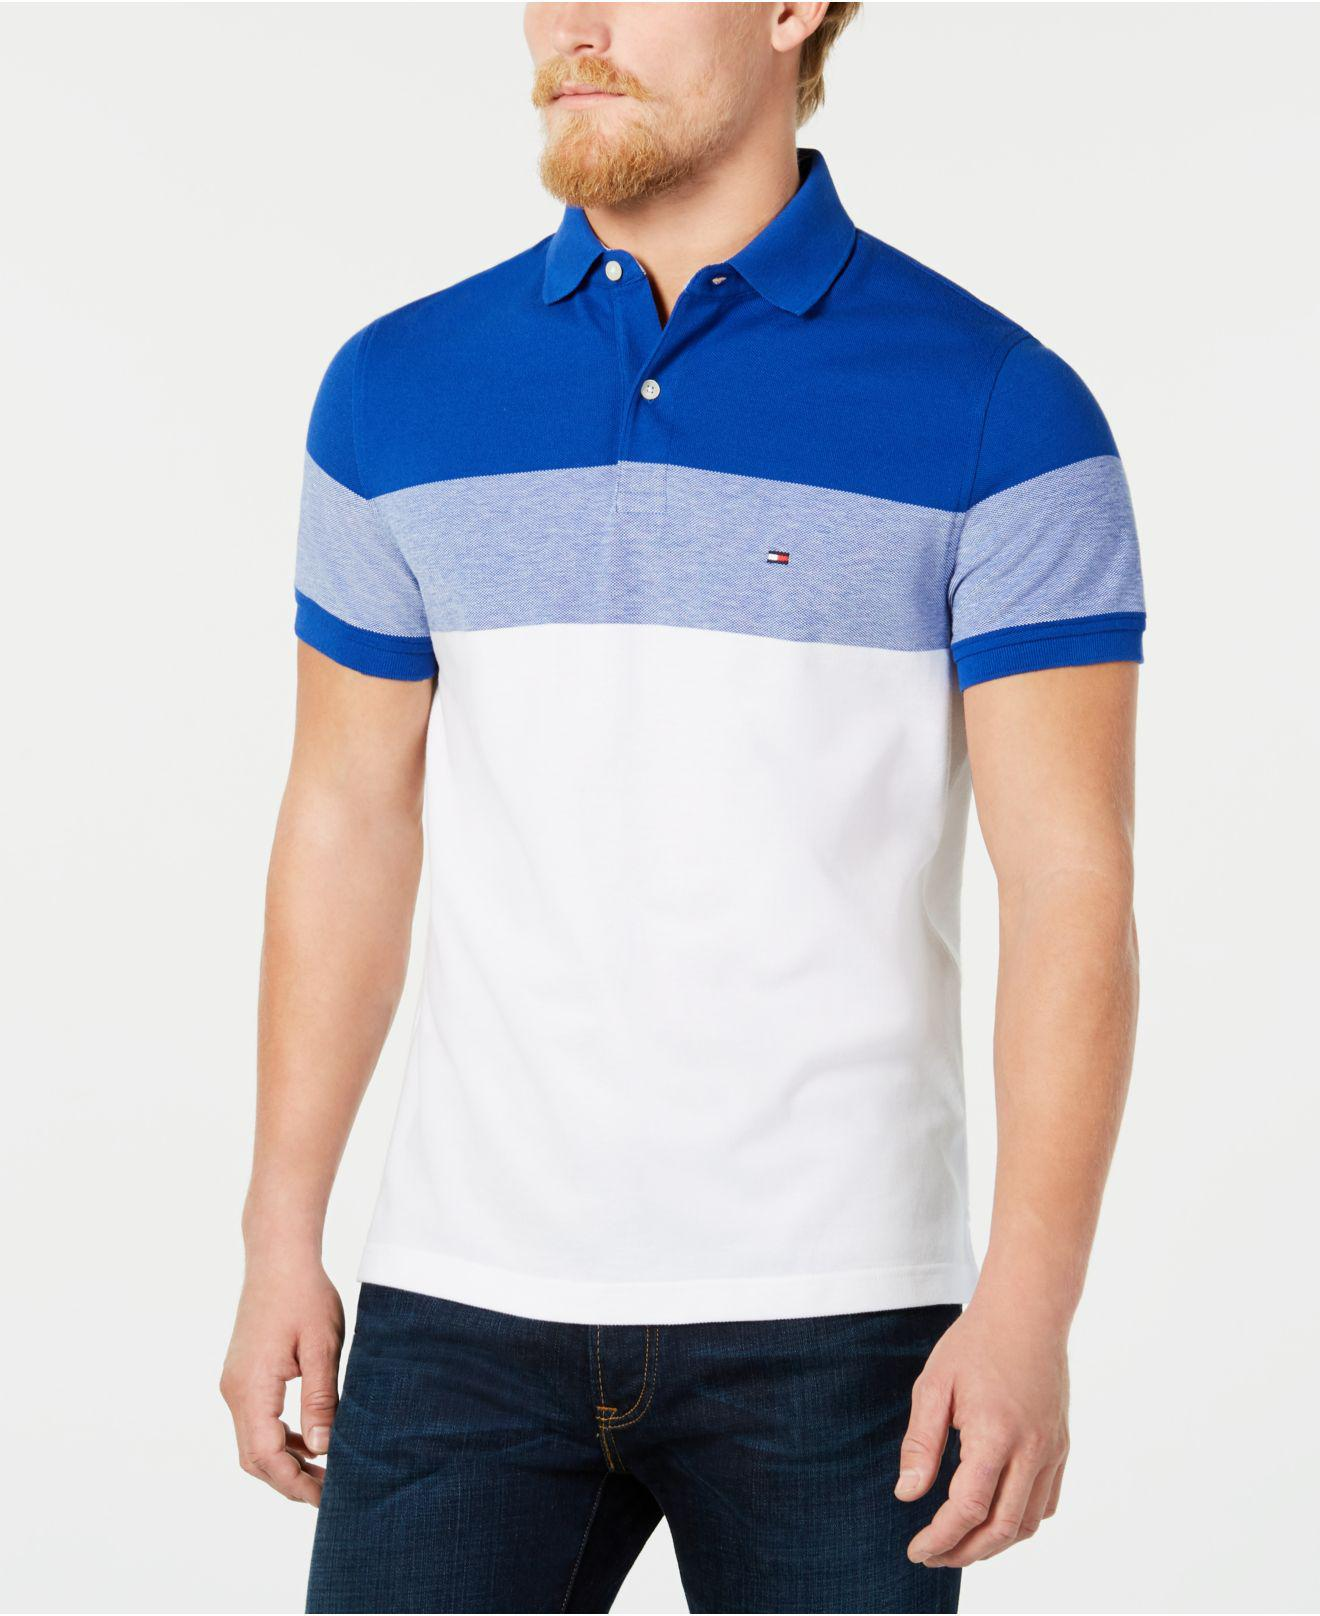 95e353051 Tommy Hilfiger Polo Shirts Macys – EDGE Engineering and Consulting ...